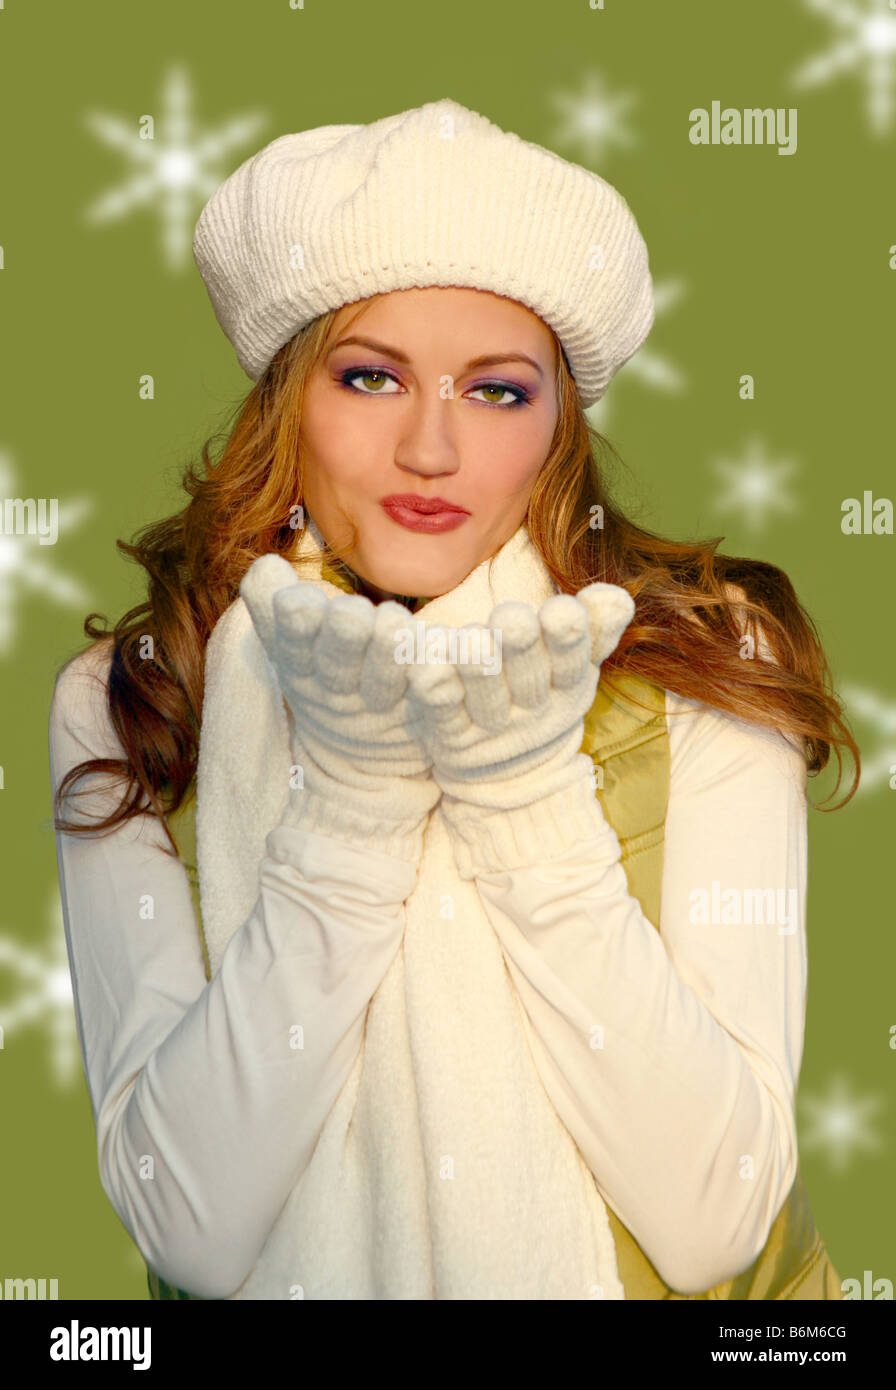 Pretty Blonde Woman Blowing Kisses Wearing Warm Winter Clothing - Stock Image